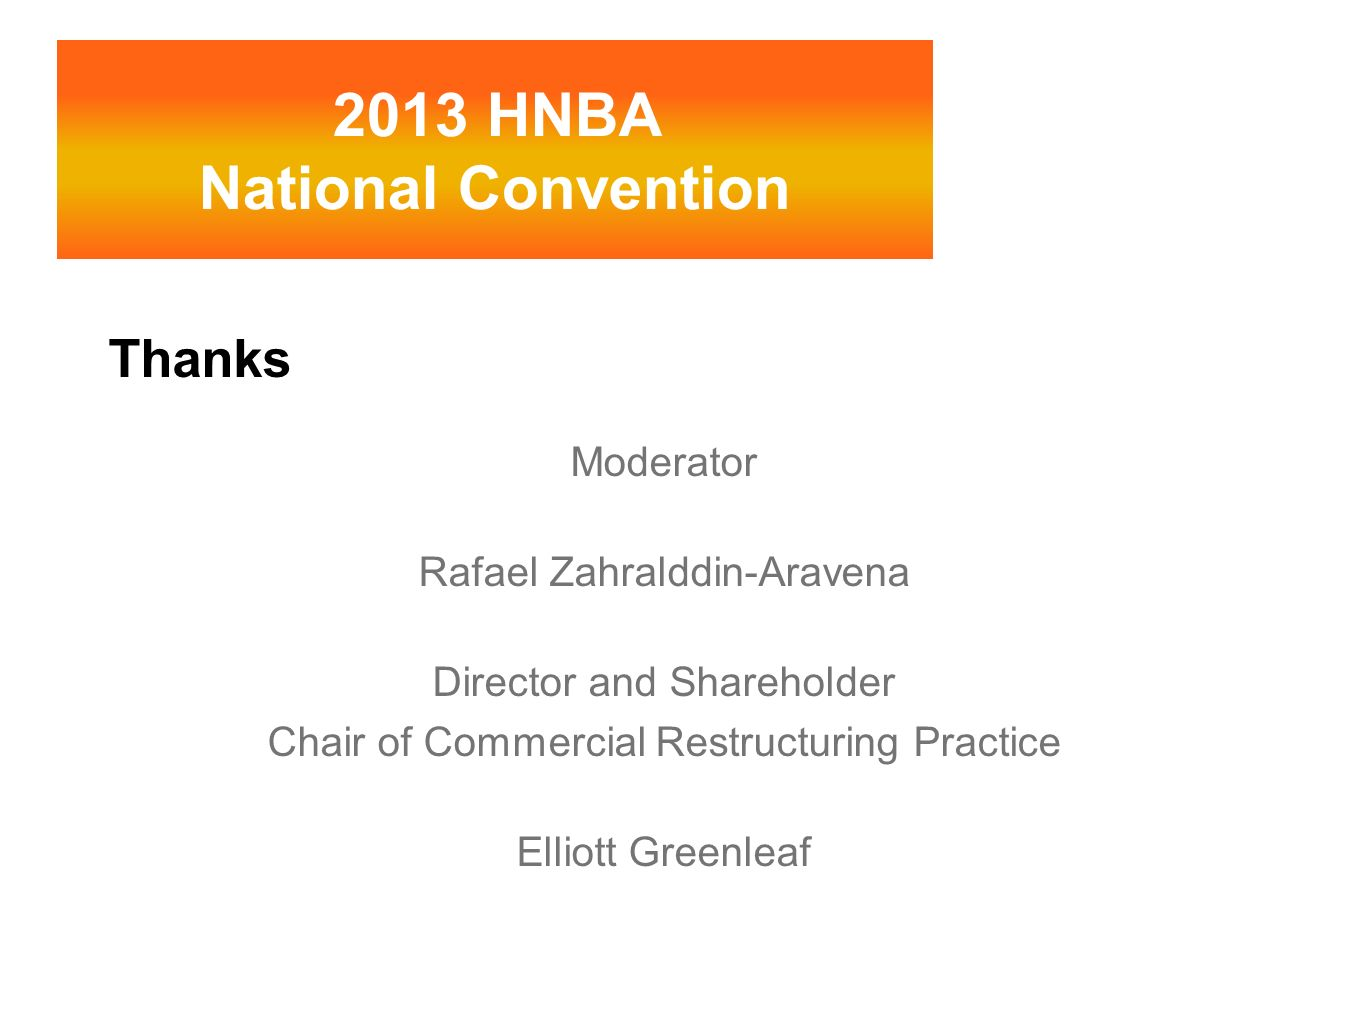 2013 HNBA National Convention